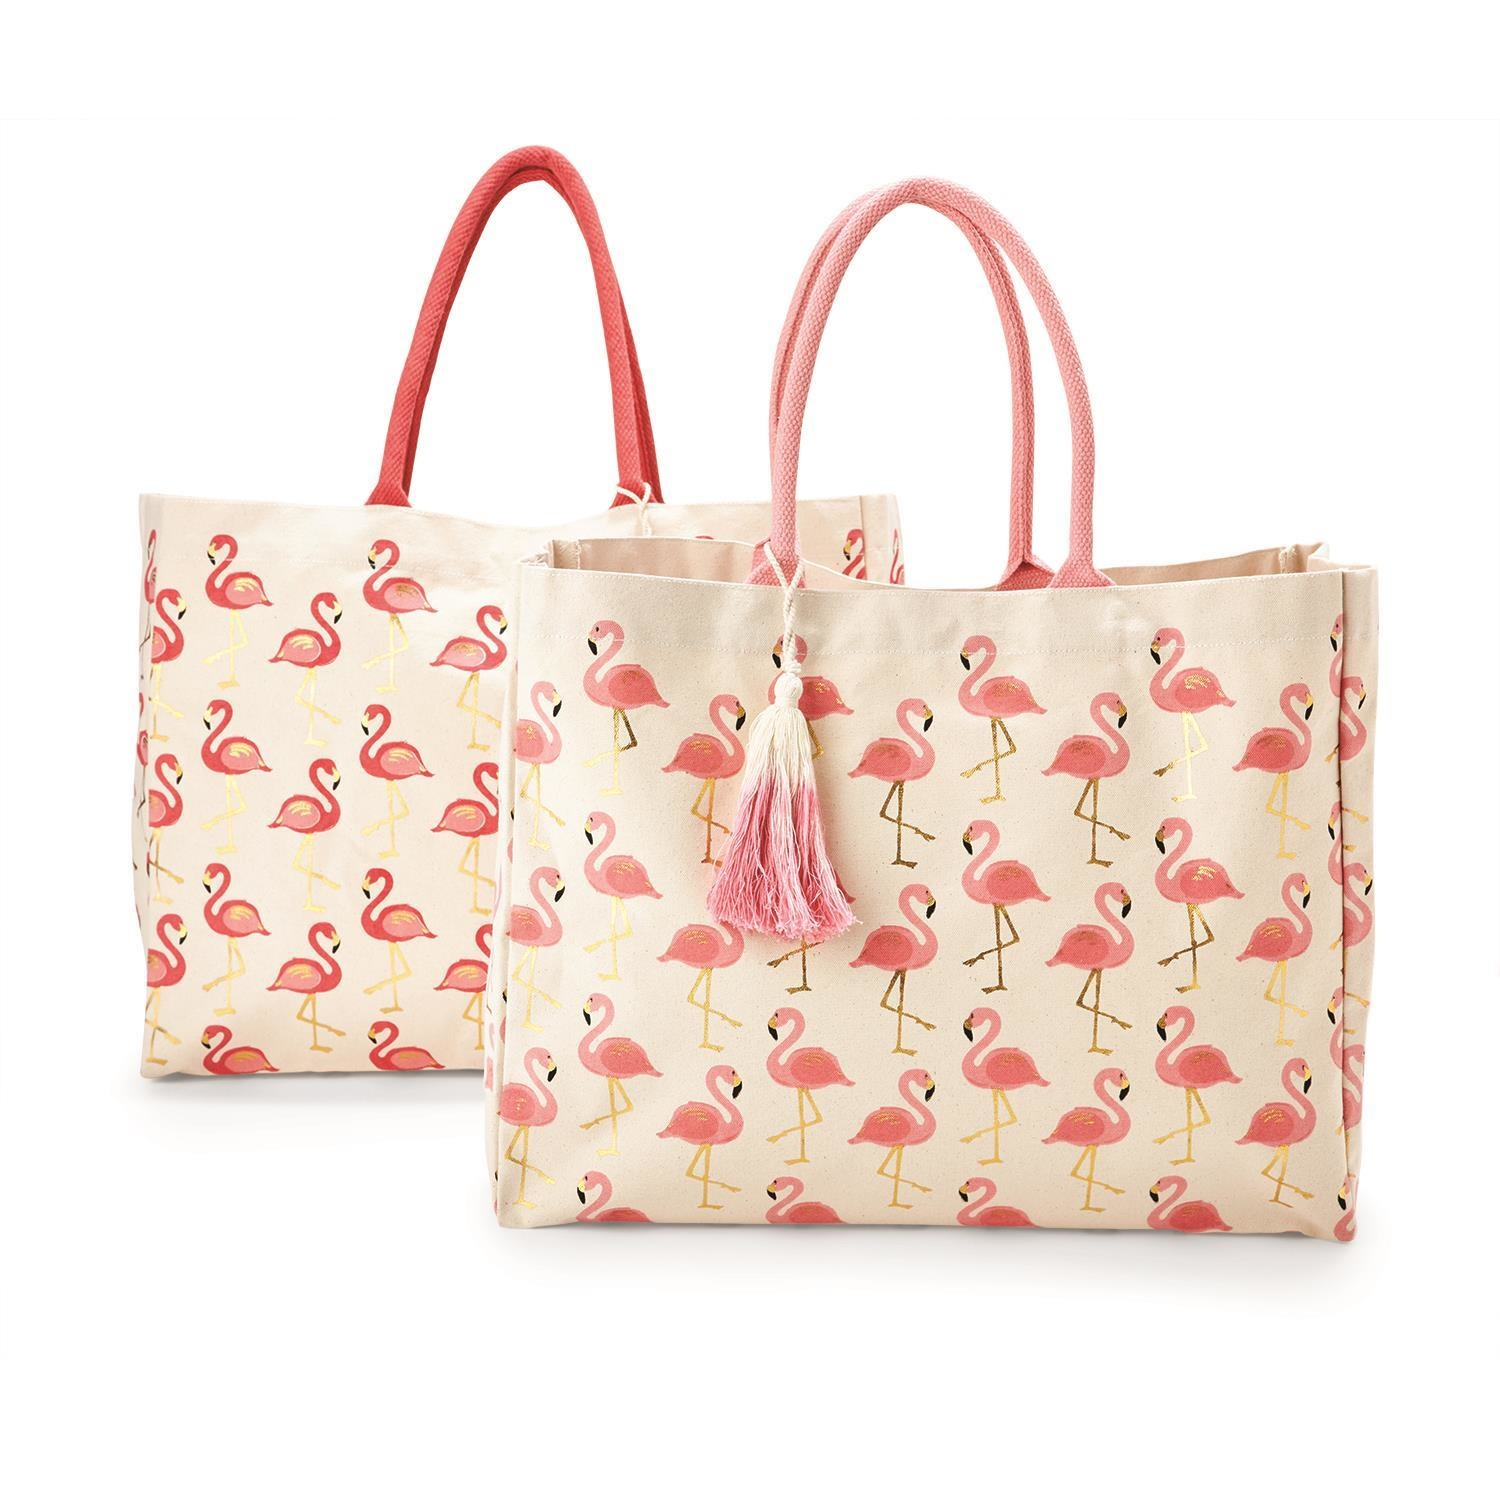 Flamingo Print Tote Bag With Monogram Included